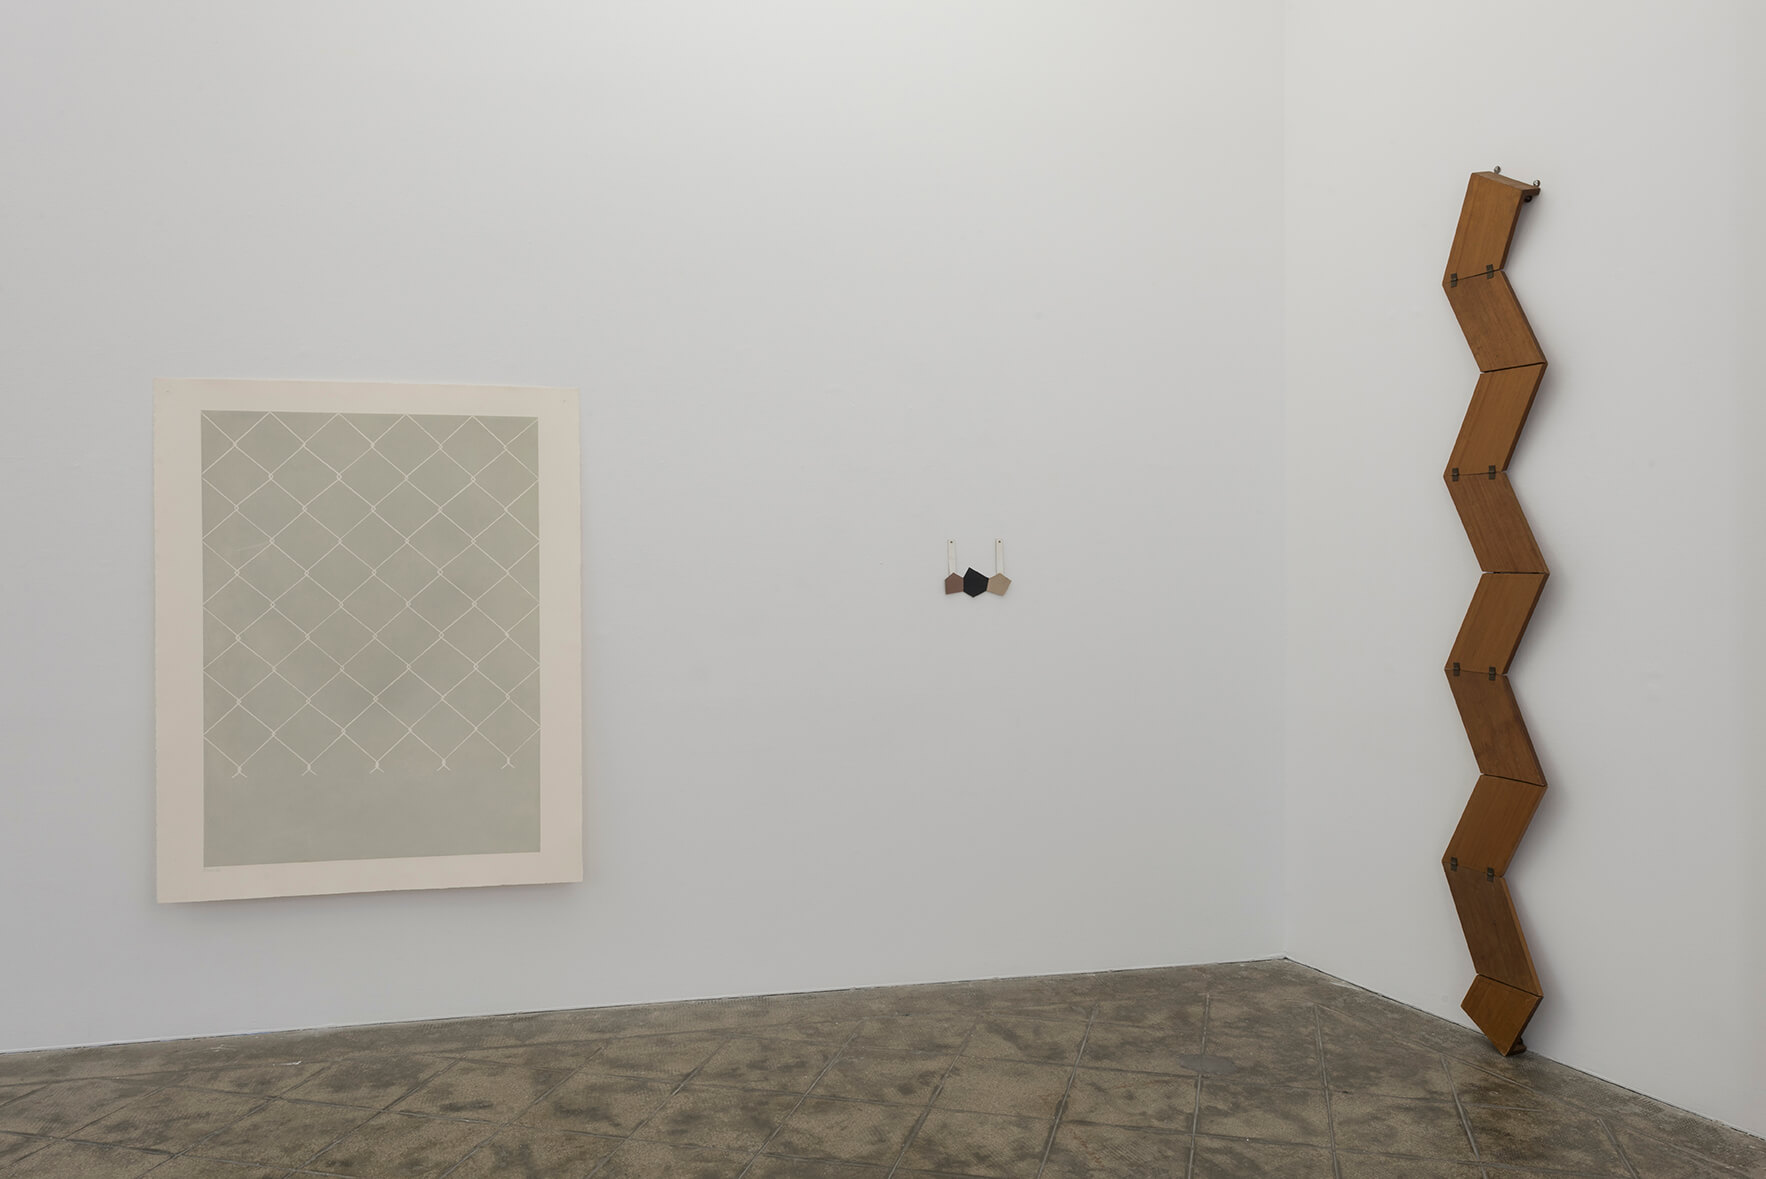 Installation view: Abans que me n'oblidi, ProjecteSD | Abans que me n'oblidi | ProjecteSD